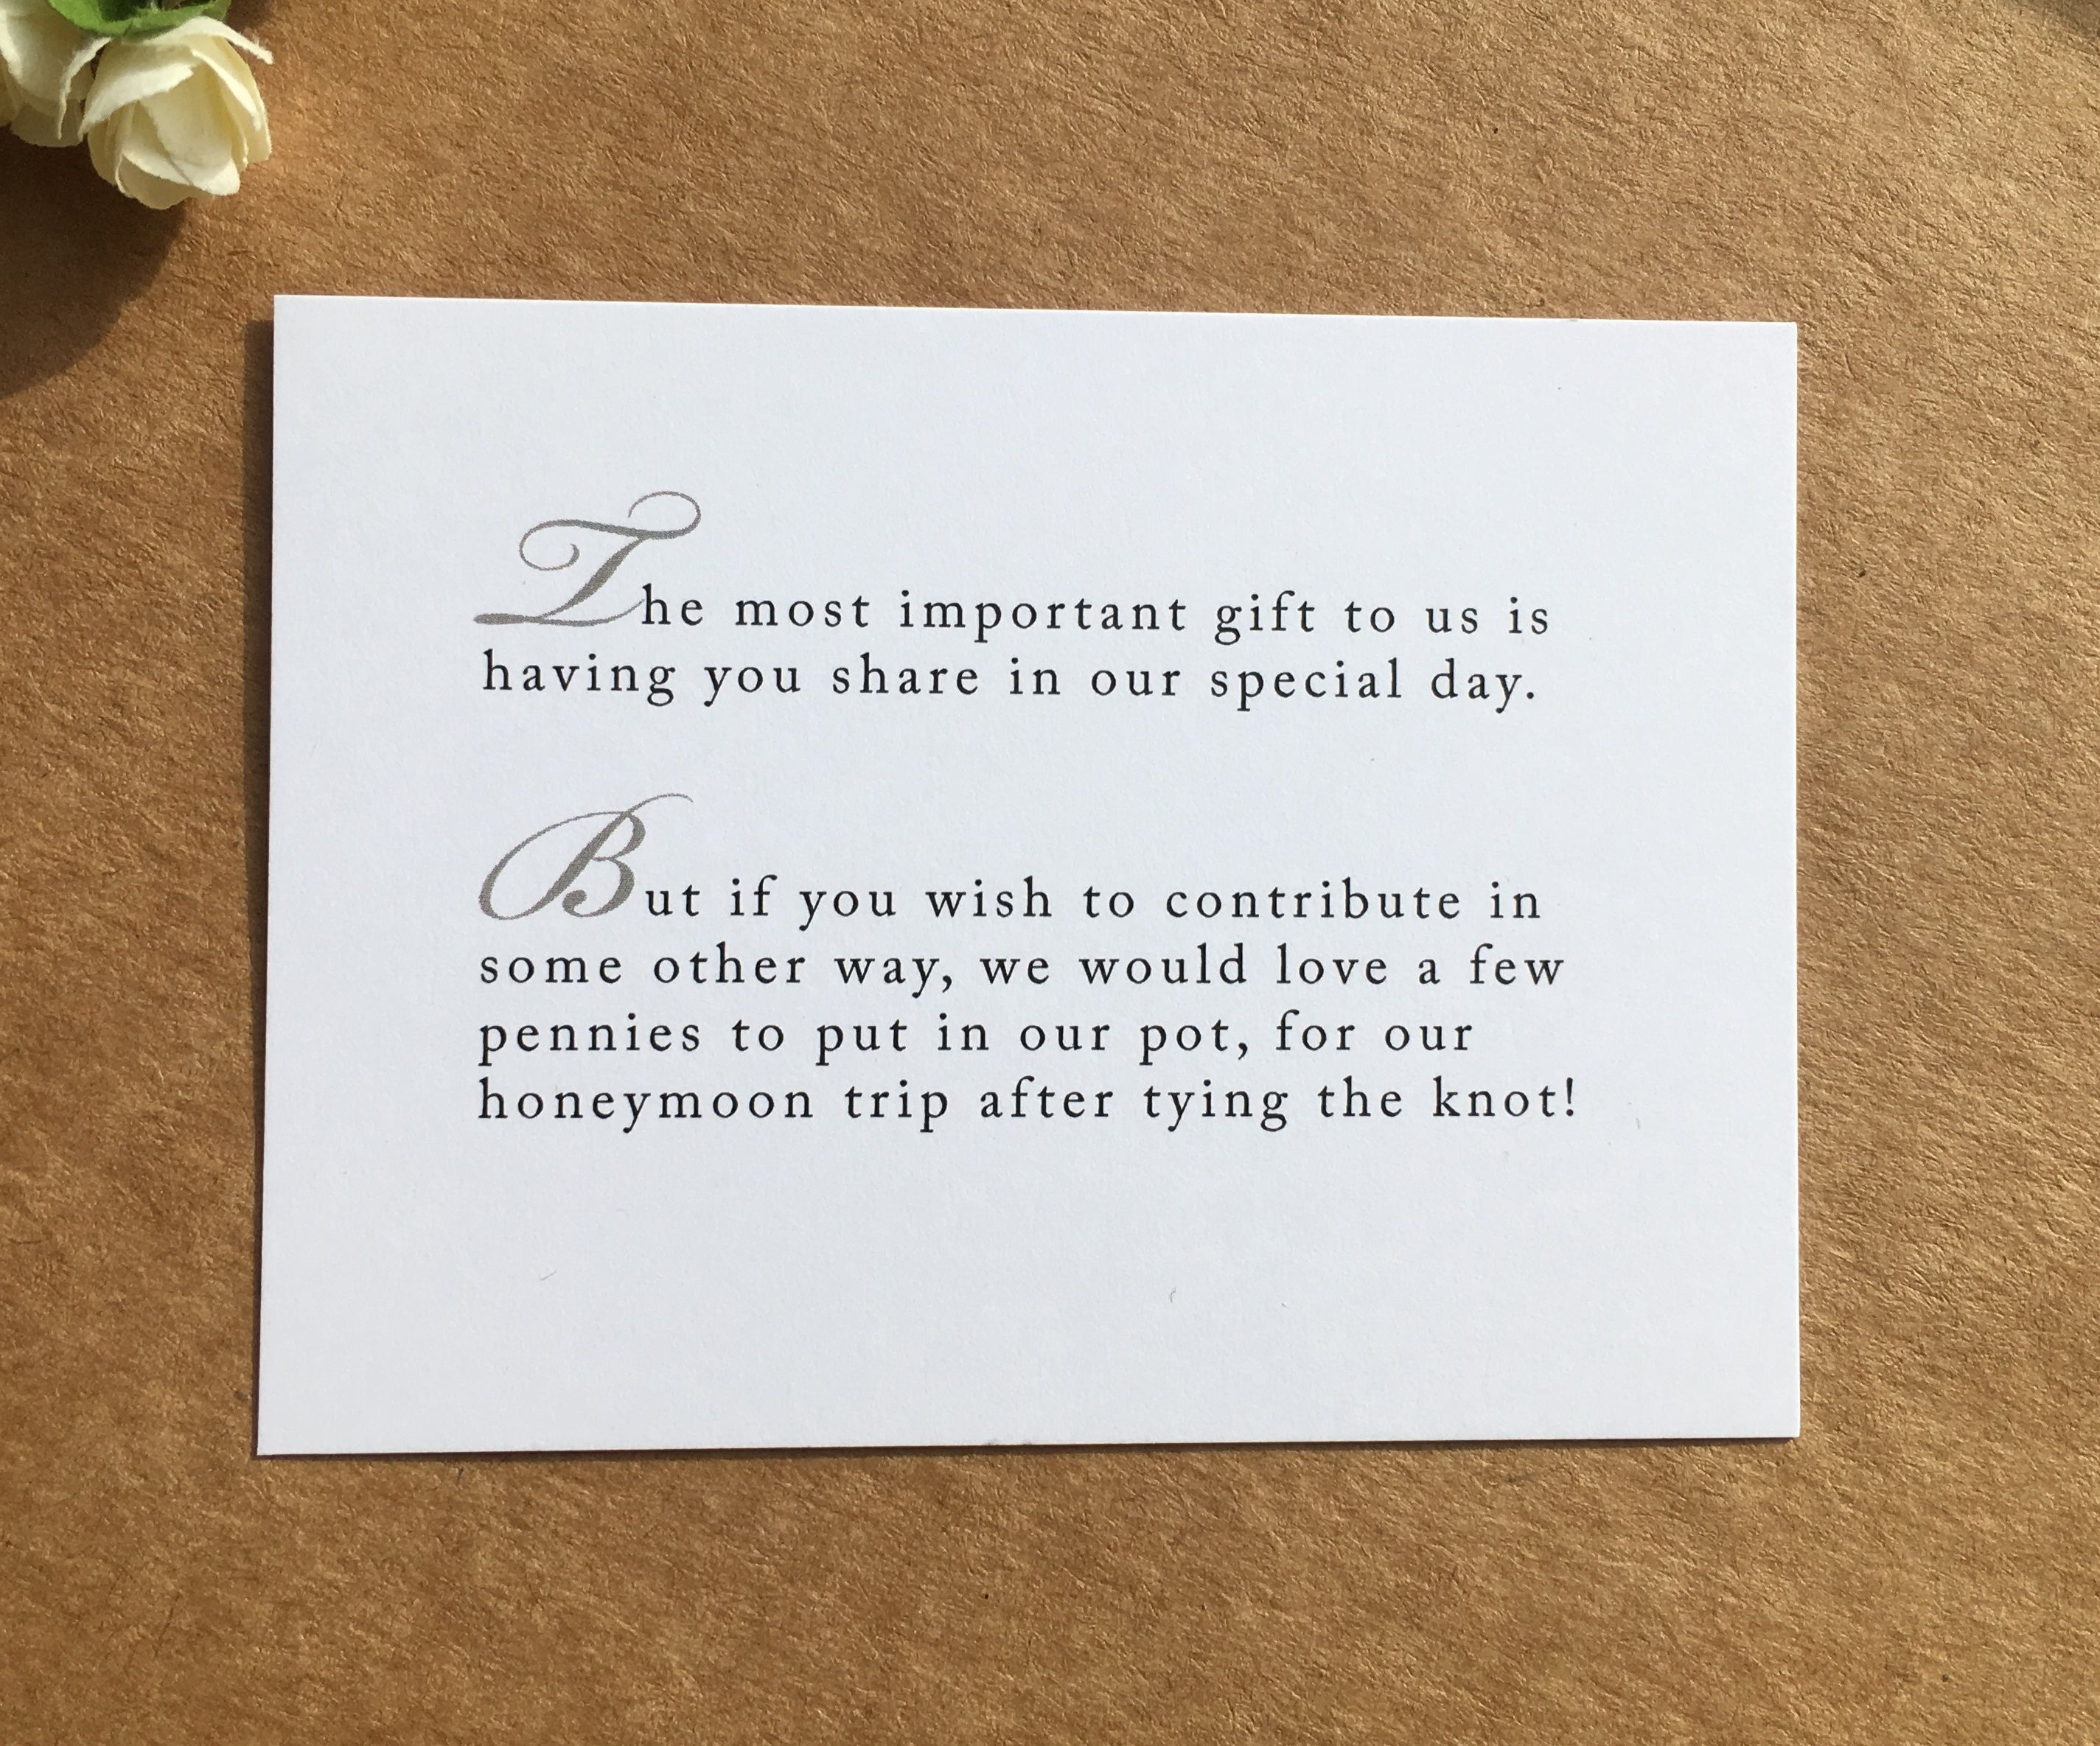 Honeymoon Poem Card Inserts for Invitations | 50th birthday ...